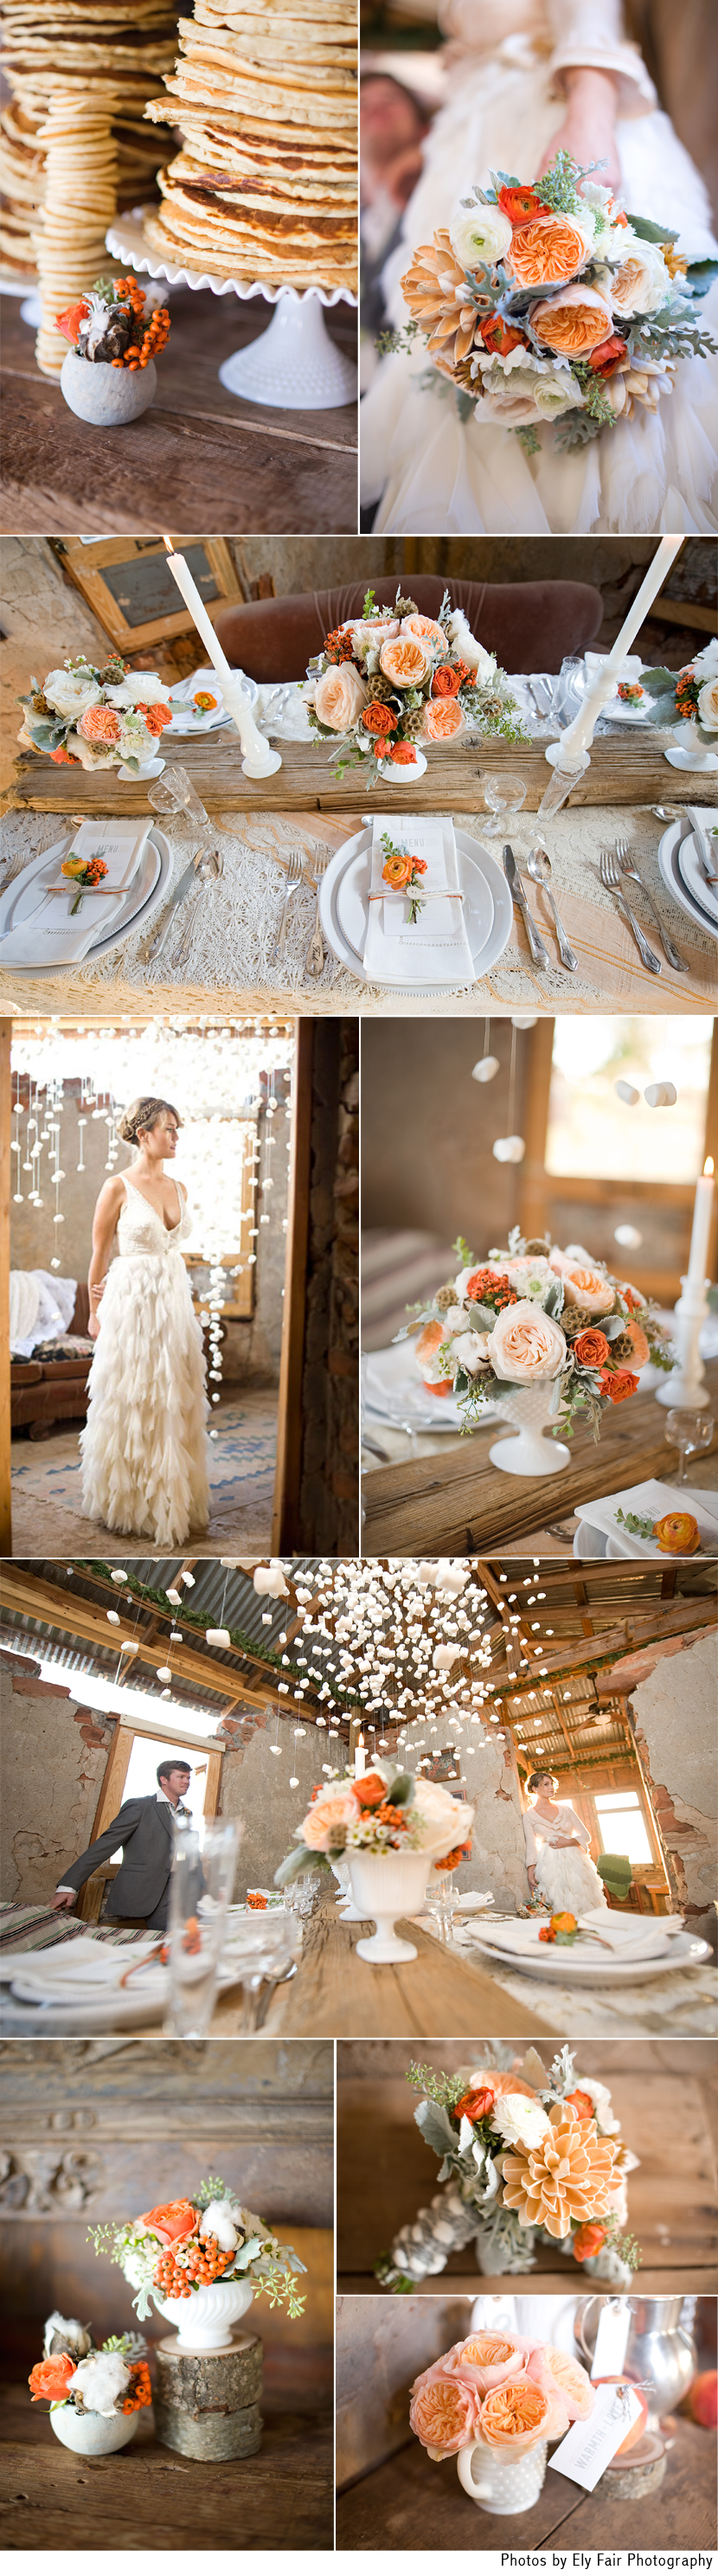 Oklahoma winter wedding inspiration